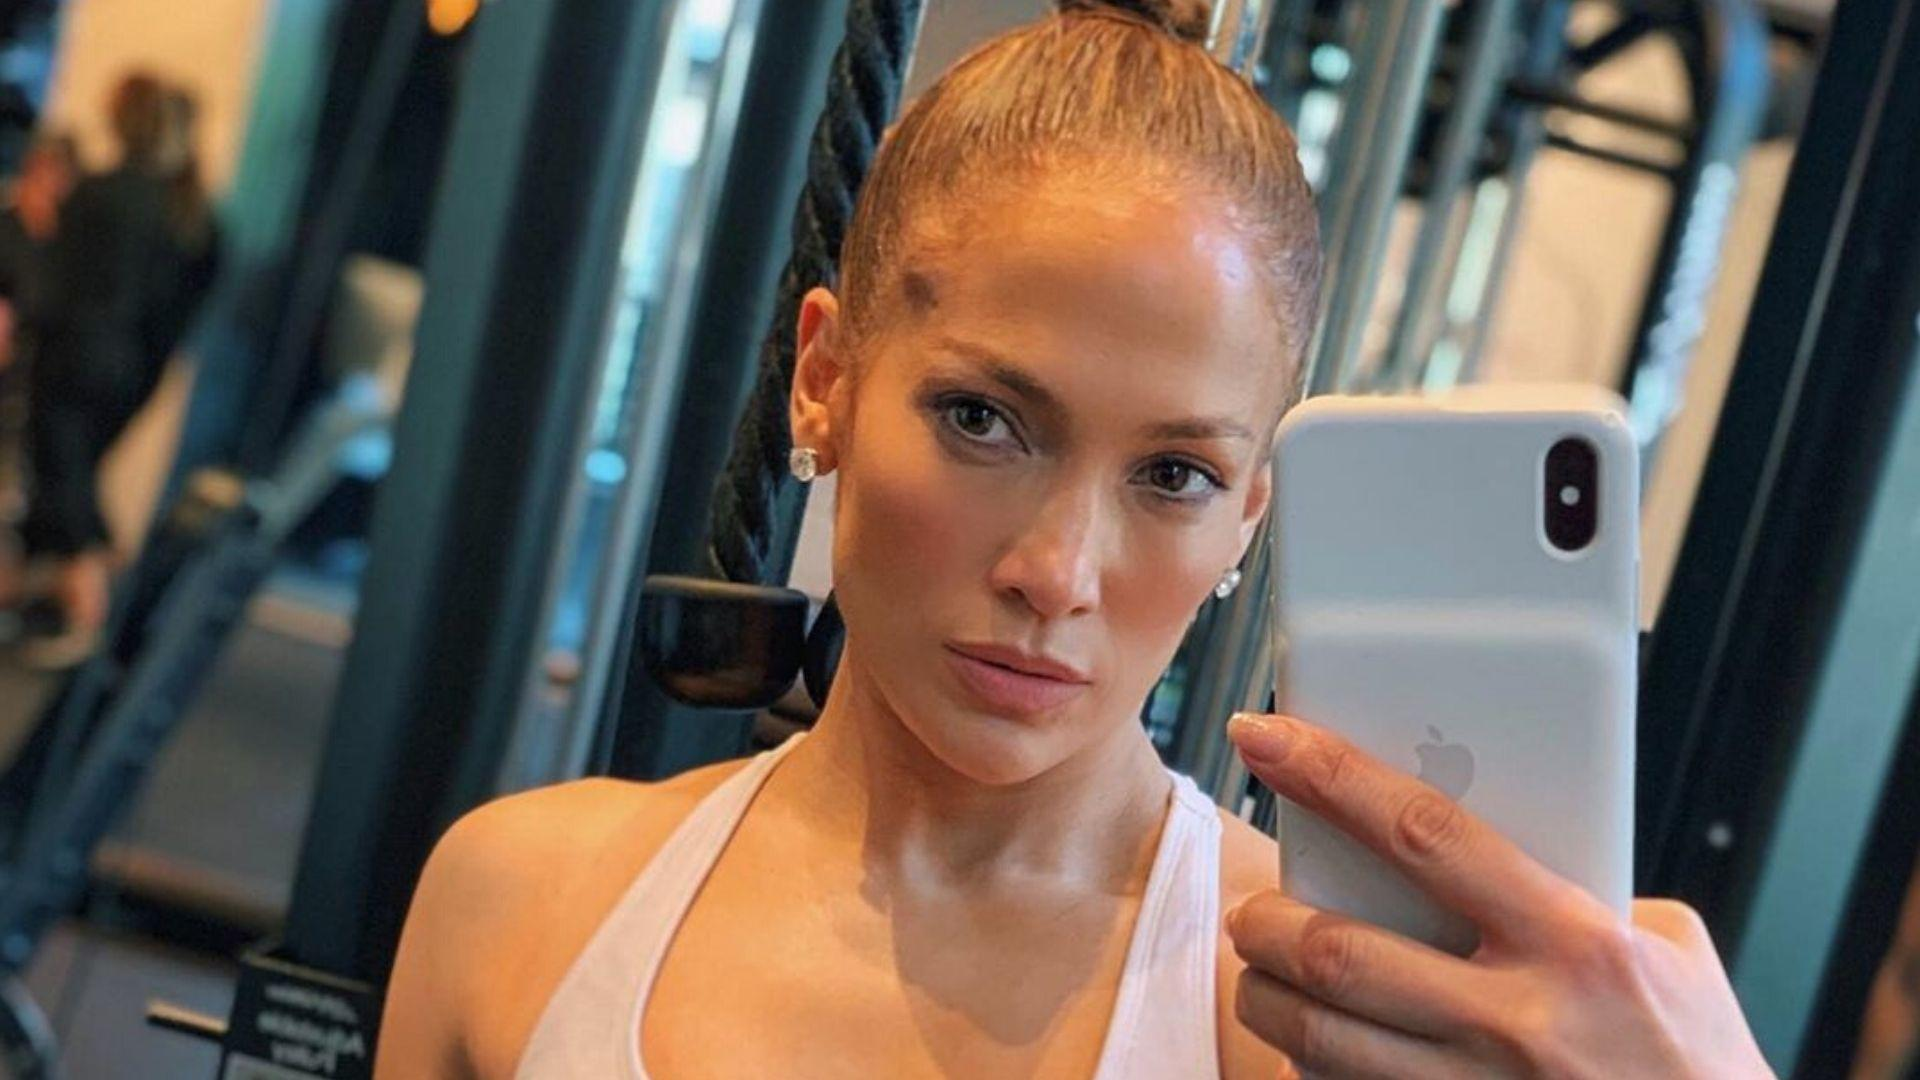 Jennifer Lopez Just Shared A Rare No-Makeup Photo, And I'm Shook At How Much Her Skin Glows